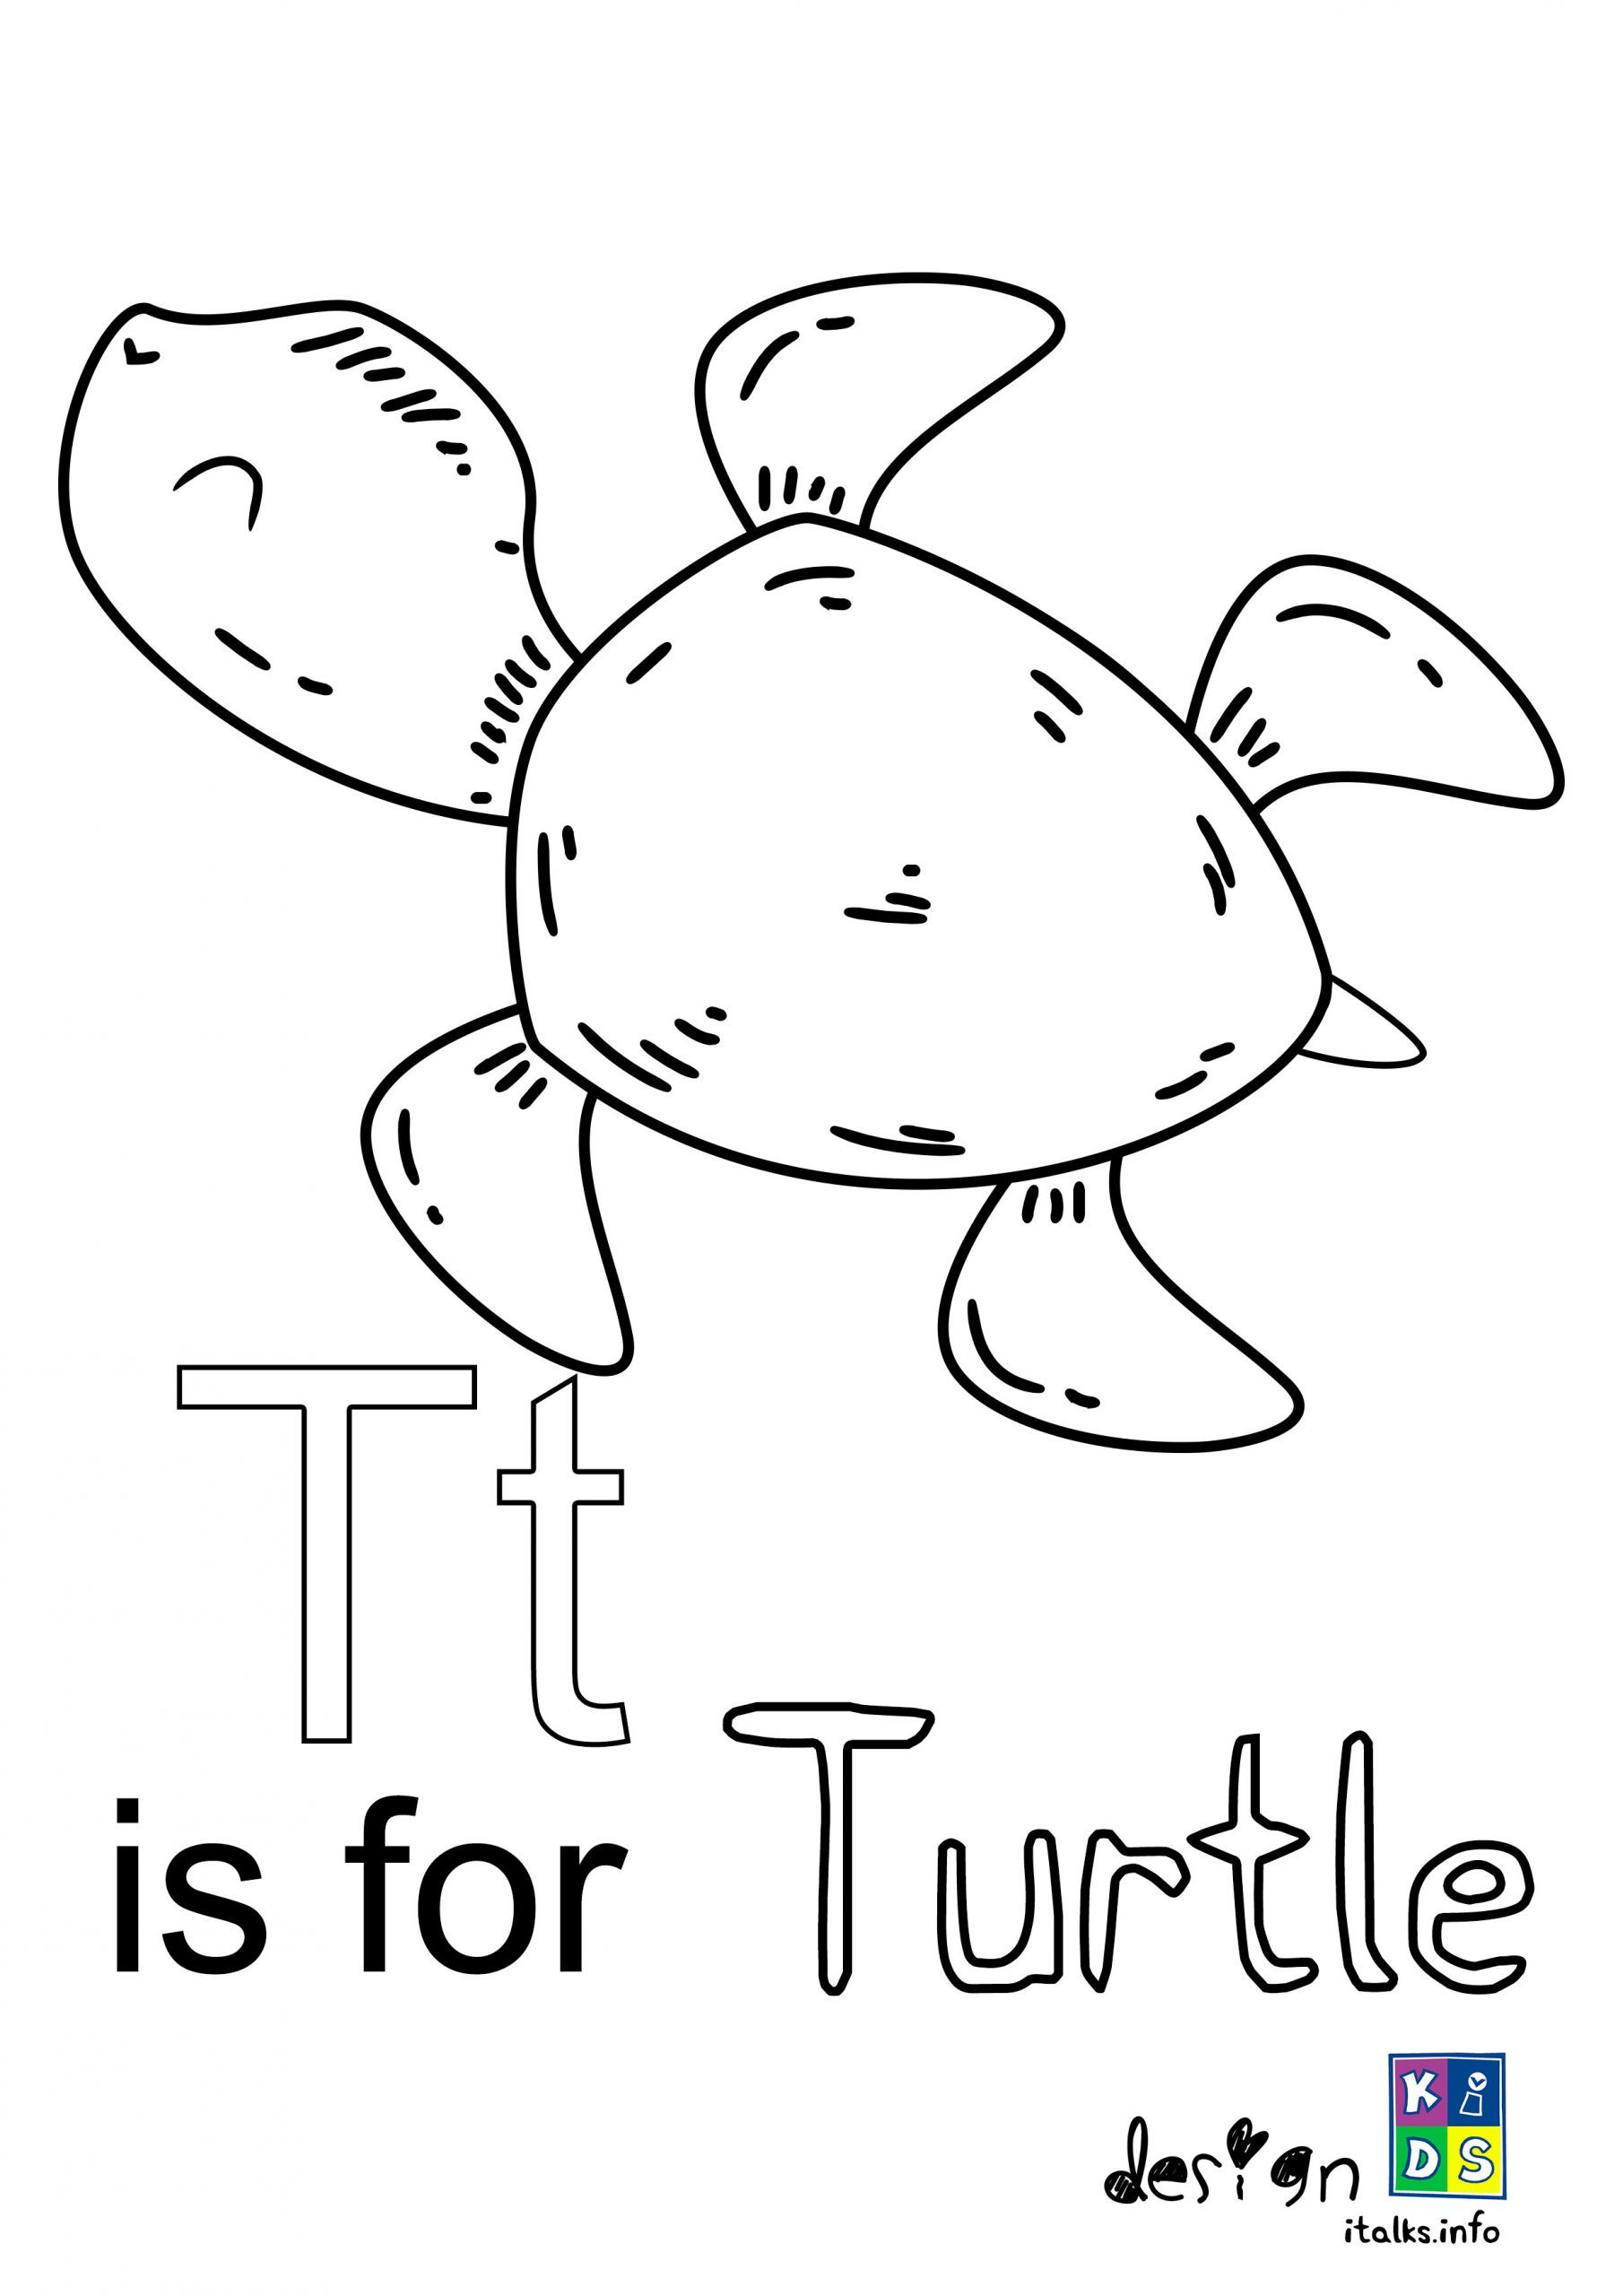 Turtle Letter T Coloring Page In 2020 Free Coloring Pages